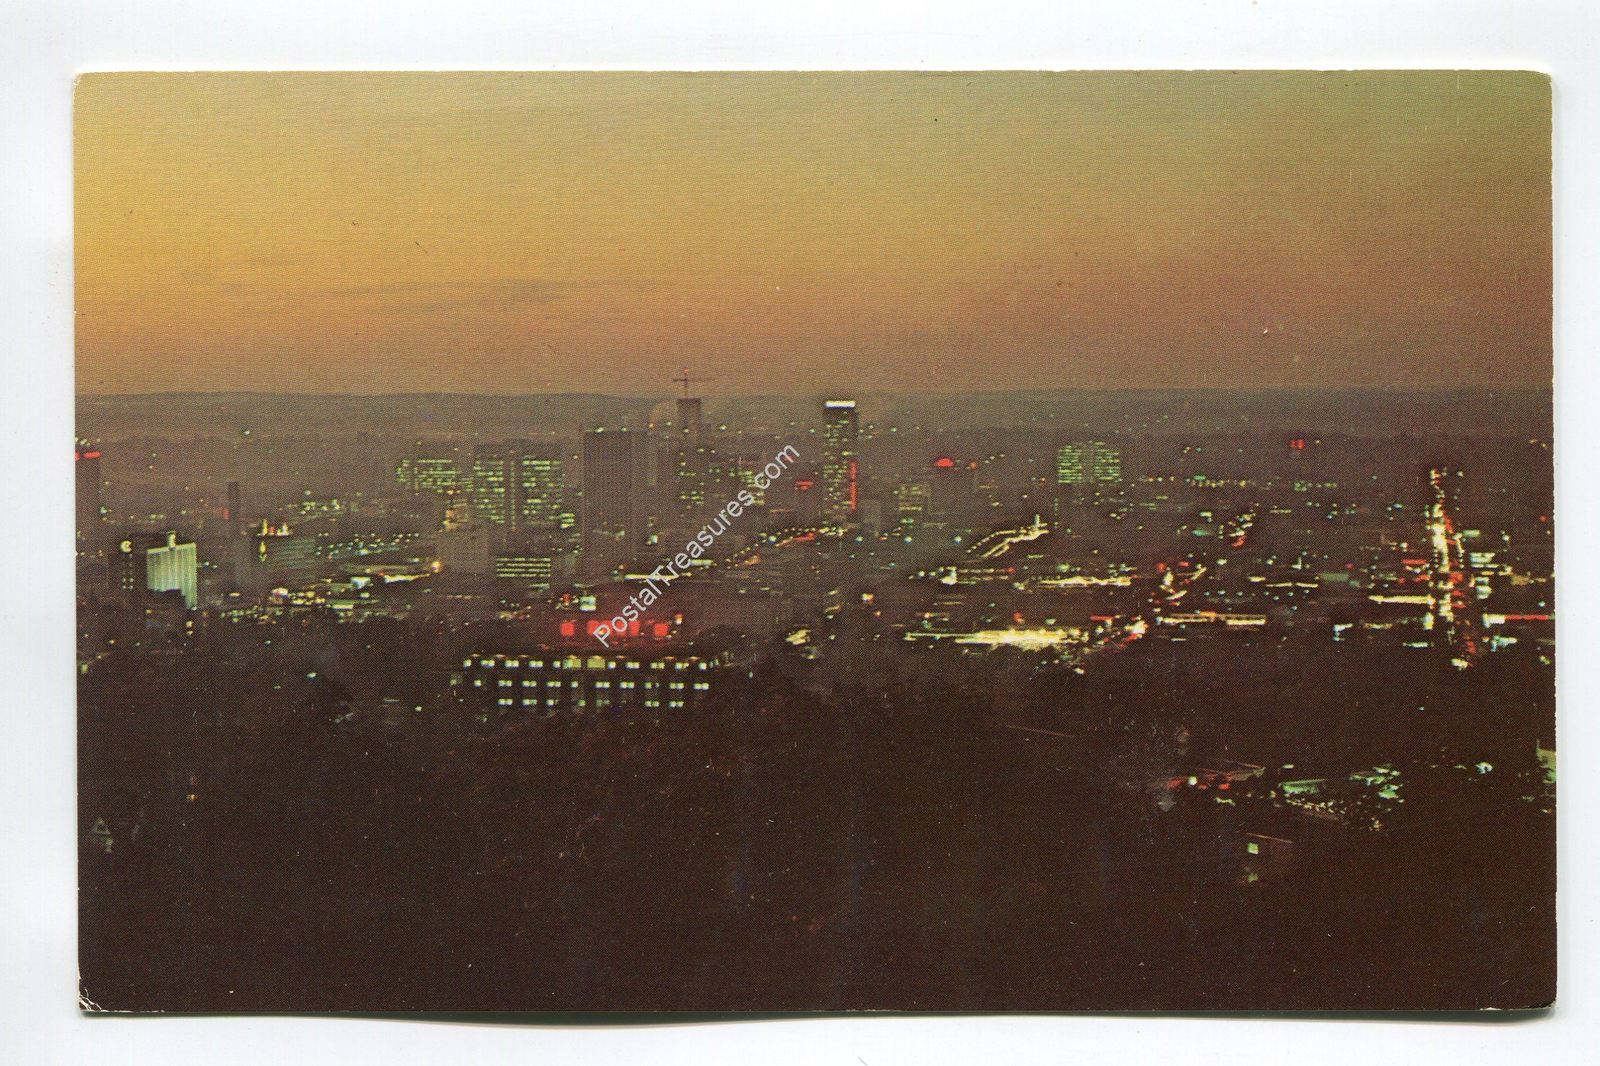 Primary image for A night view from Red Mountain showing the downtown area - Birmingham Alabama